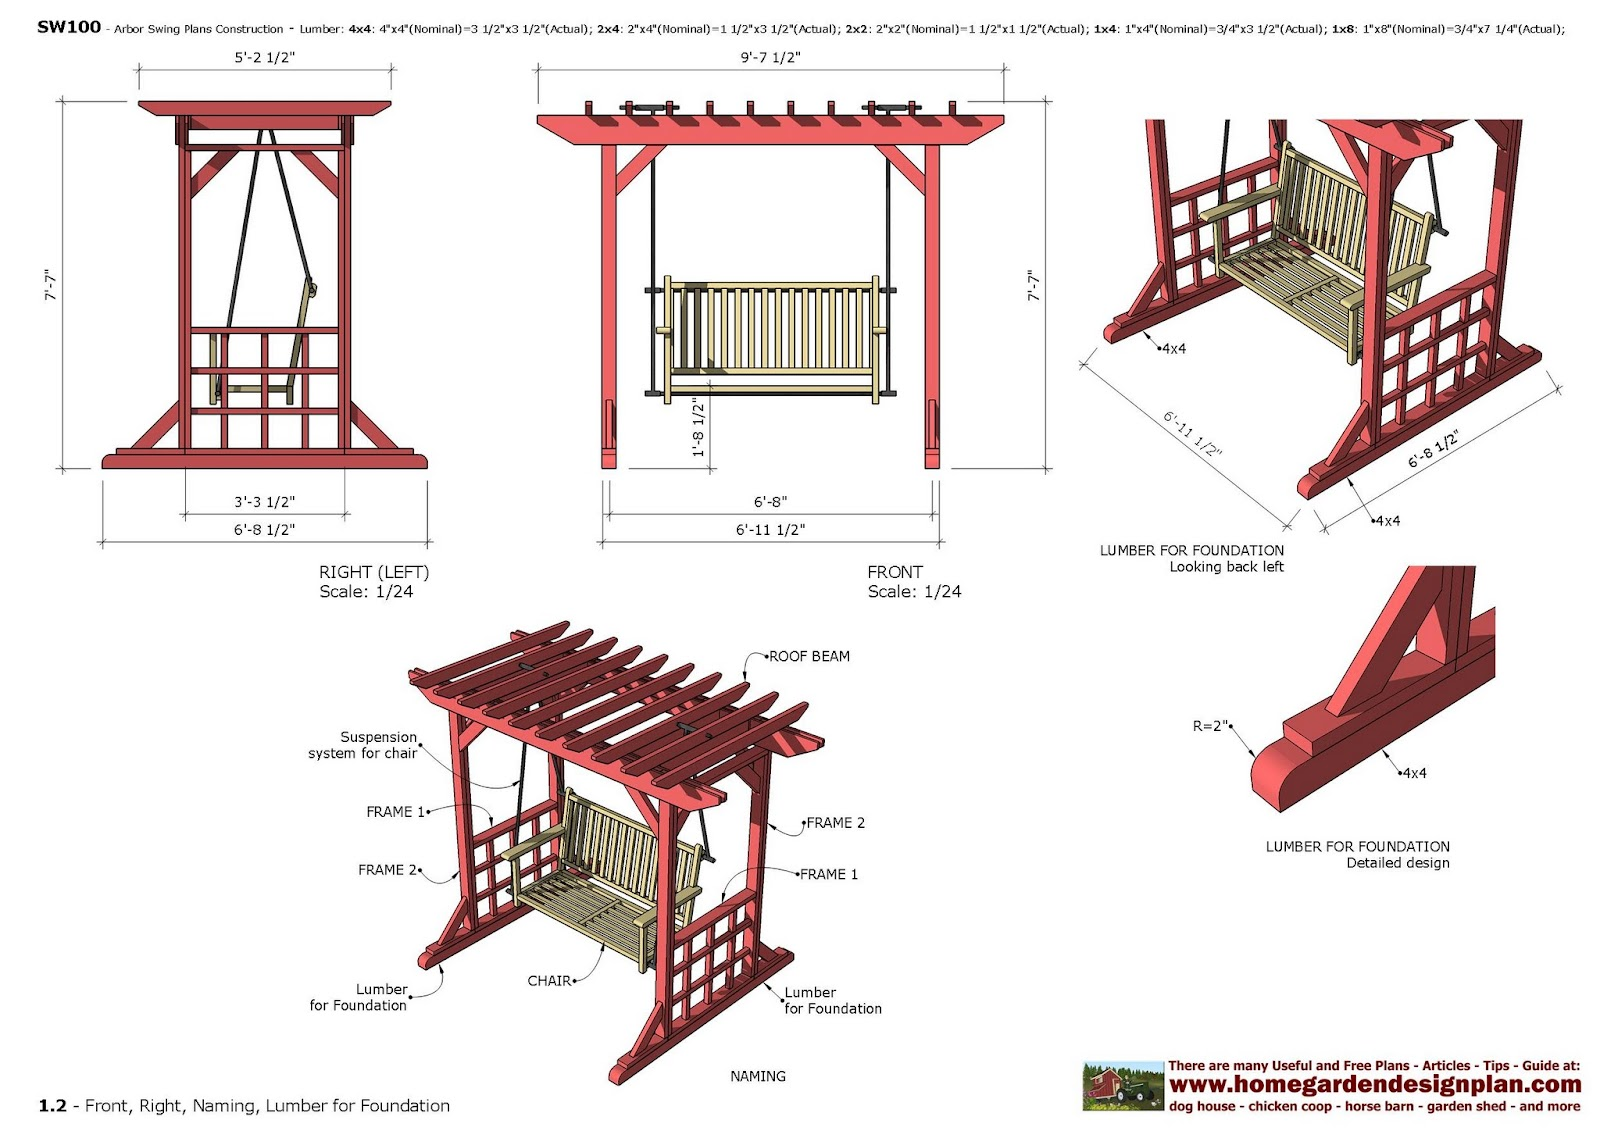 Home garden plans furniture plans arbor swing plans for How to build a swing chair